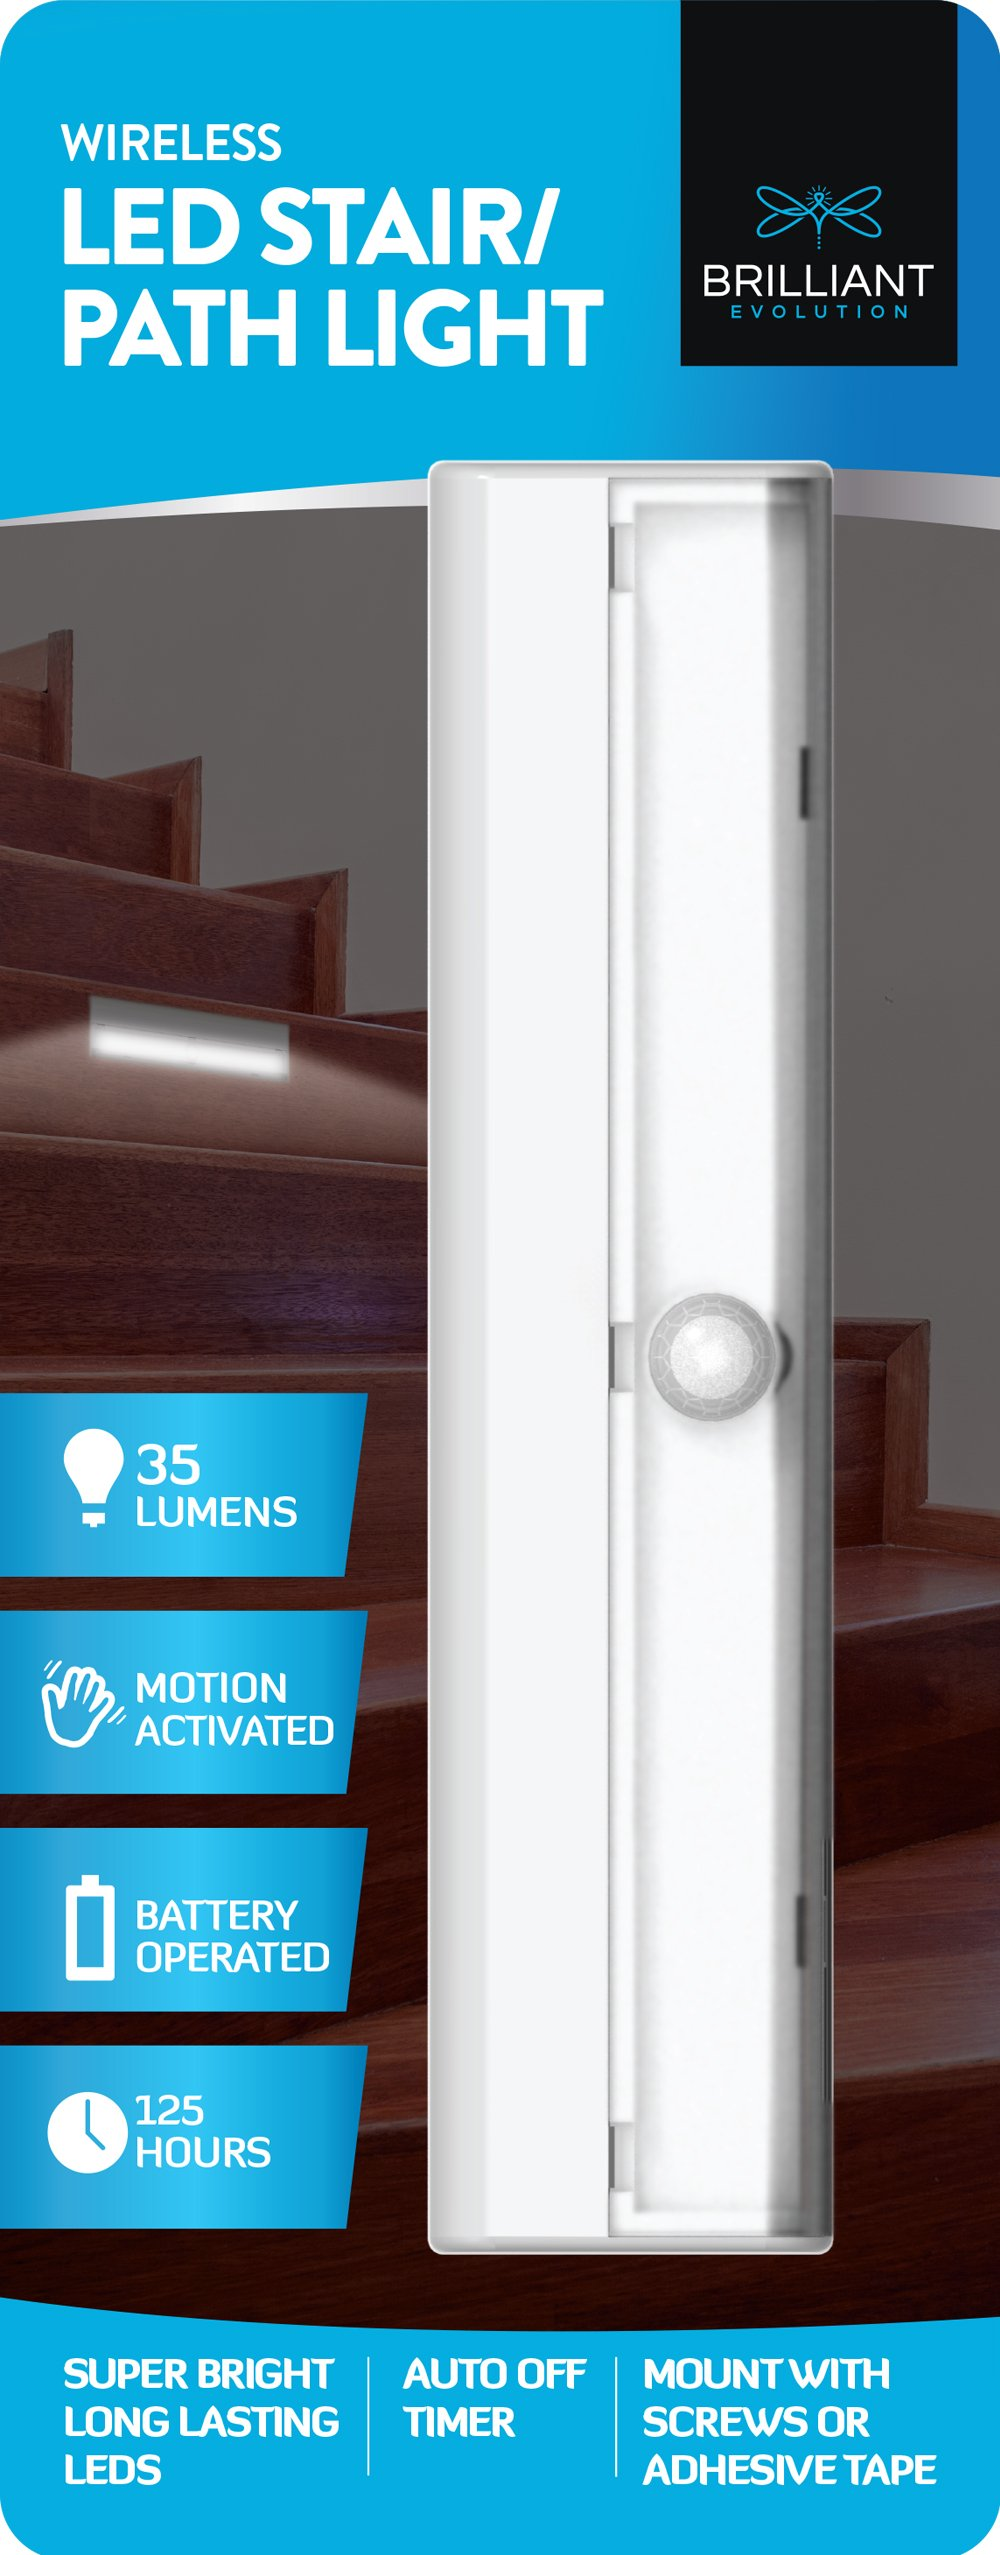 Brilliant Evolution BRRC125 Wireless LED Stair / Path Light With Motion Sensor - Operates On 3 AA Batteries - Perfect For Interior Step , Stairwell And Hallway Lighting